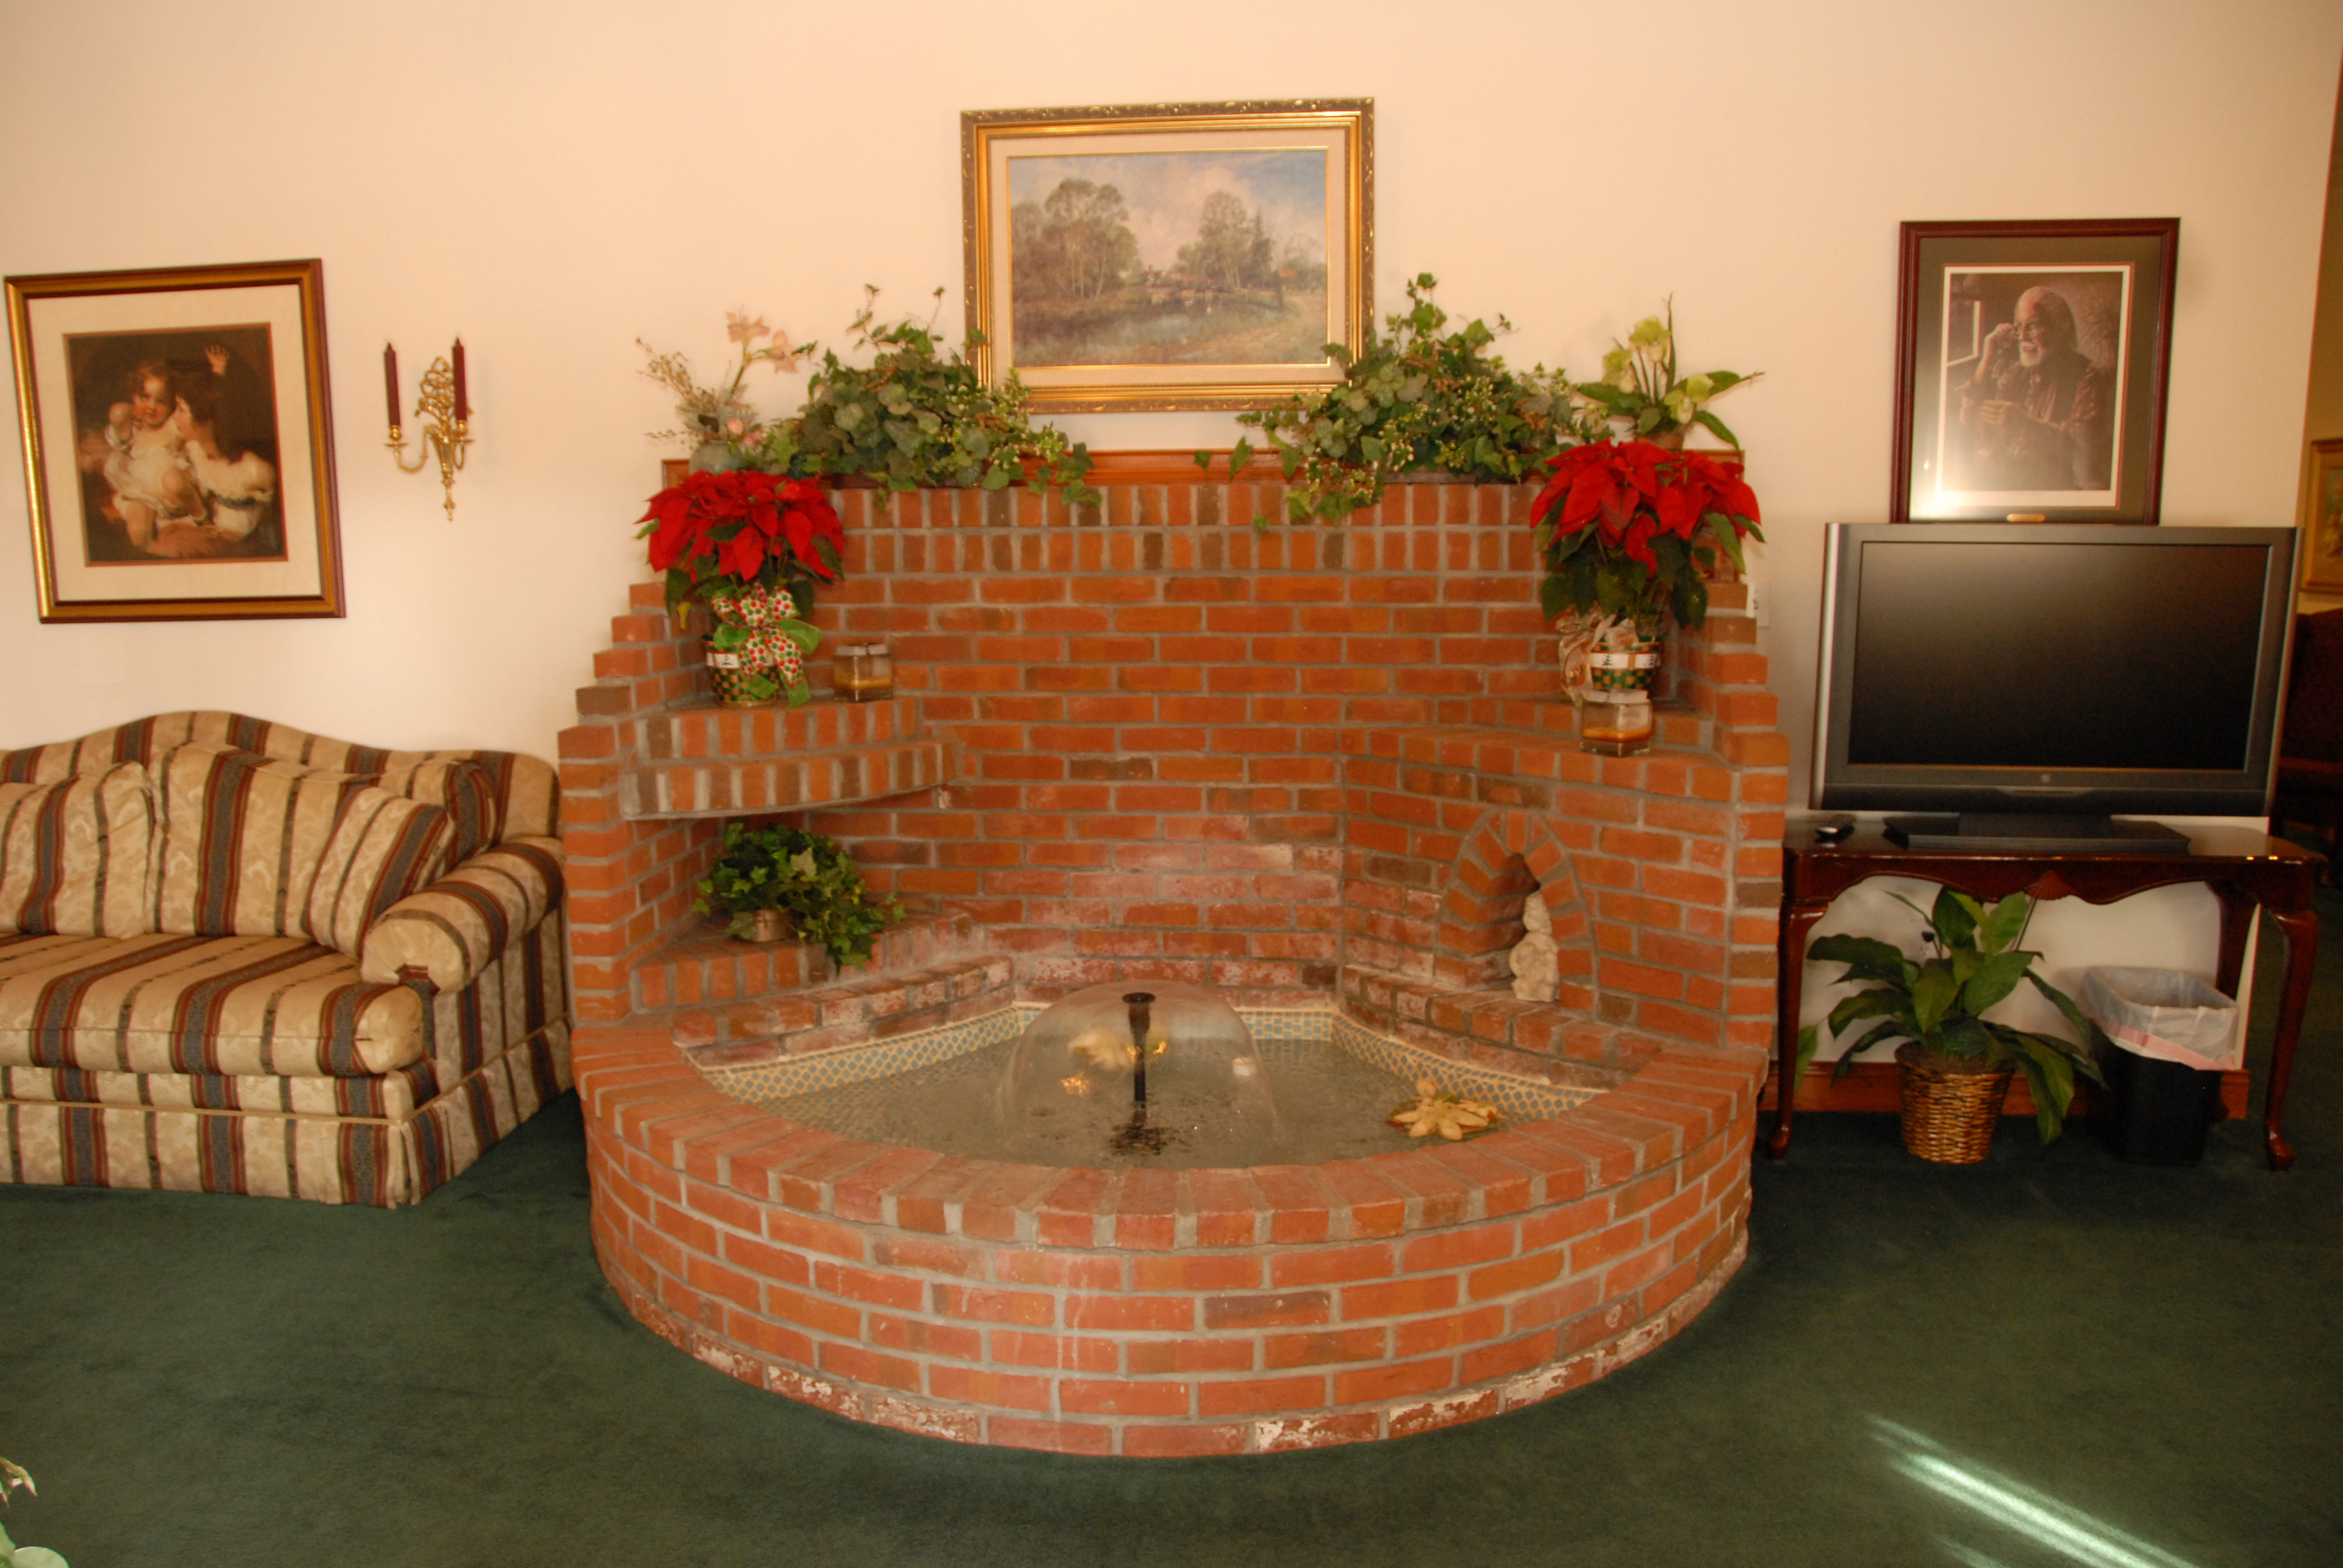 Osceola Memory Gardens Cemetery Funeral Homes & Crematory image 3